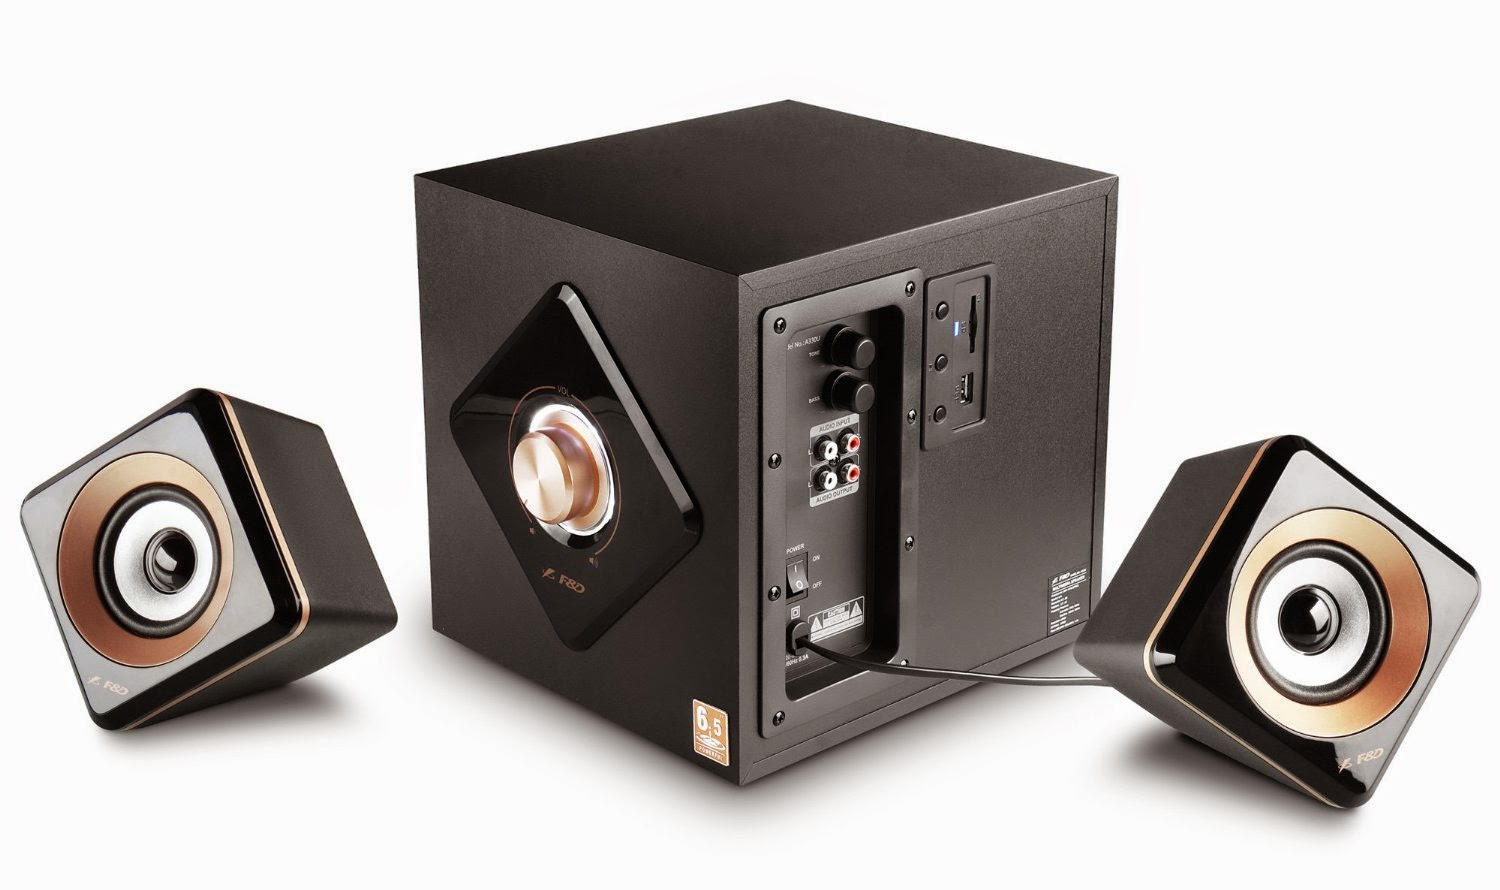 F&D 2.1 multimedia Speakers A 330U for Rs 2119